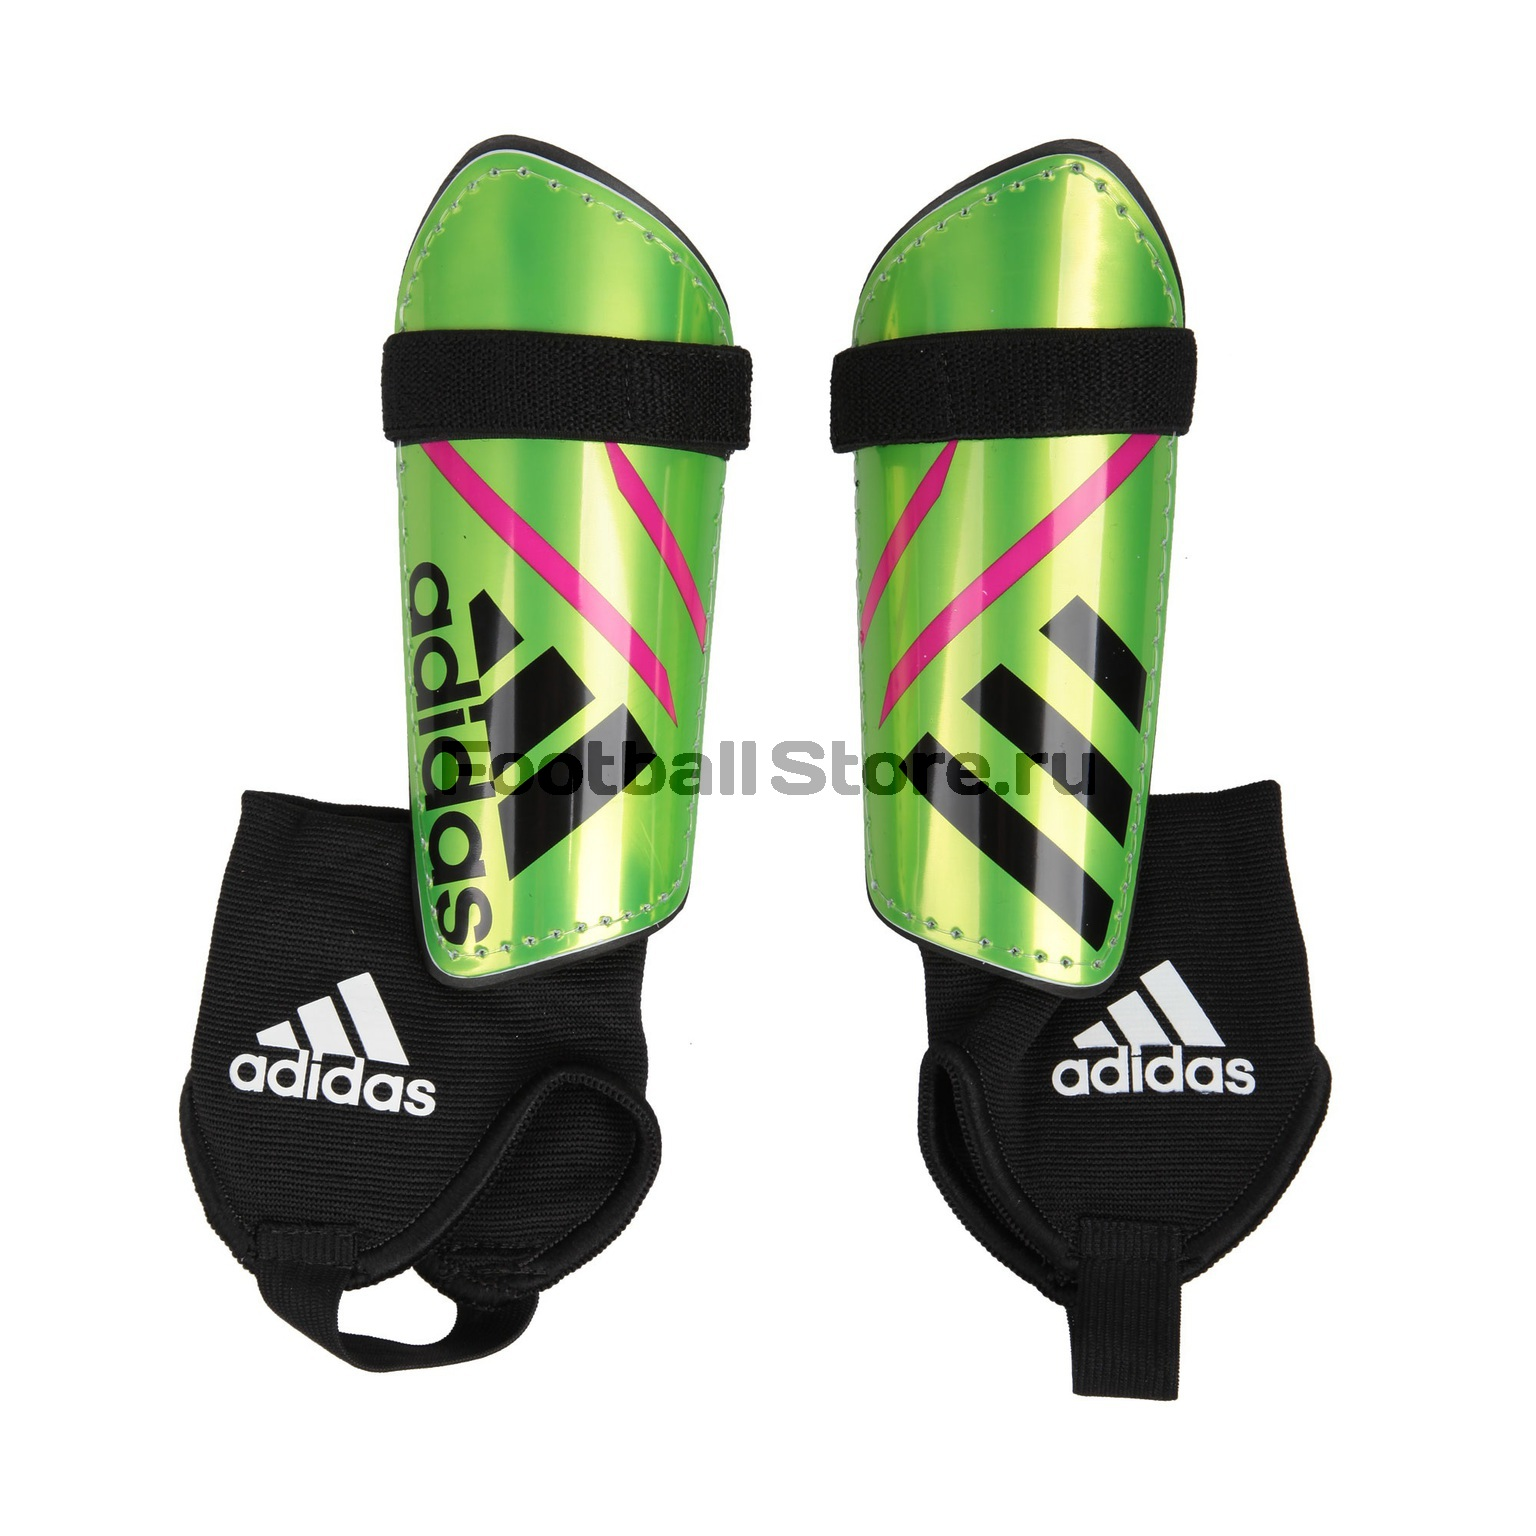 Защита ног Adidas Щитки Adidas Chost Replique AH7772